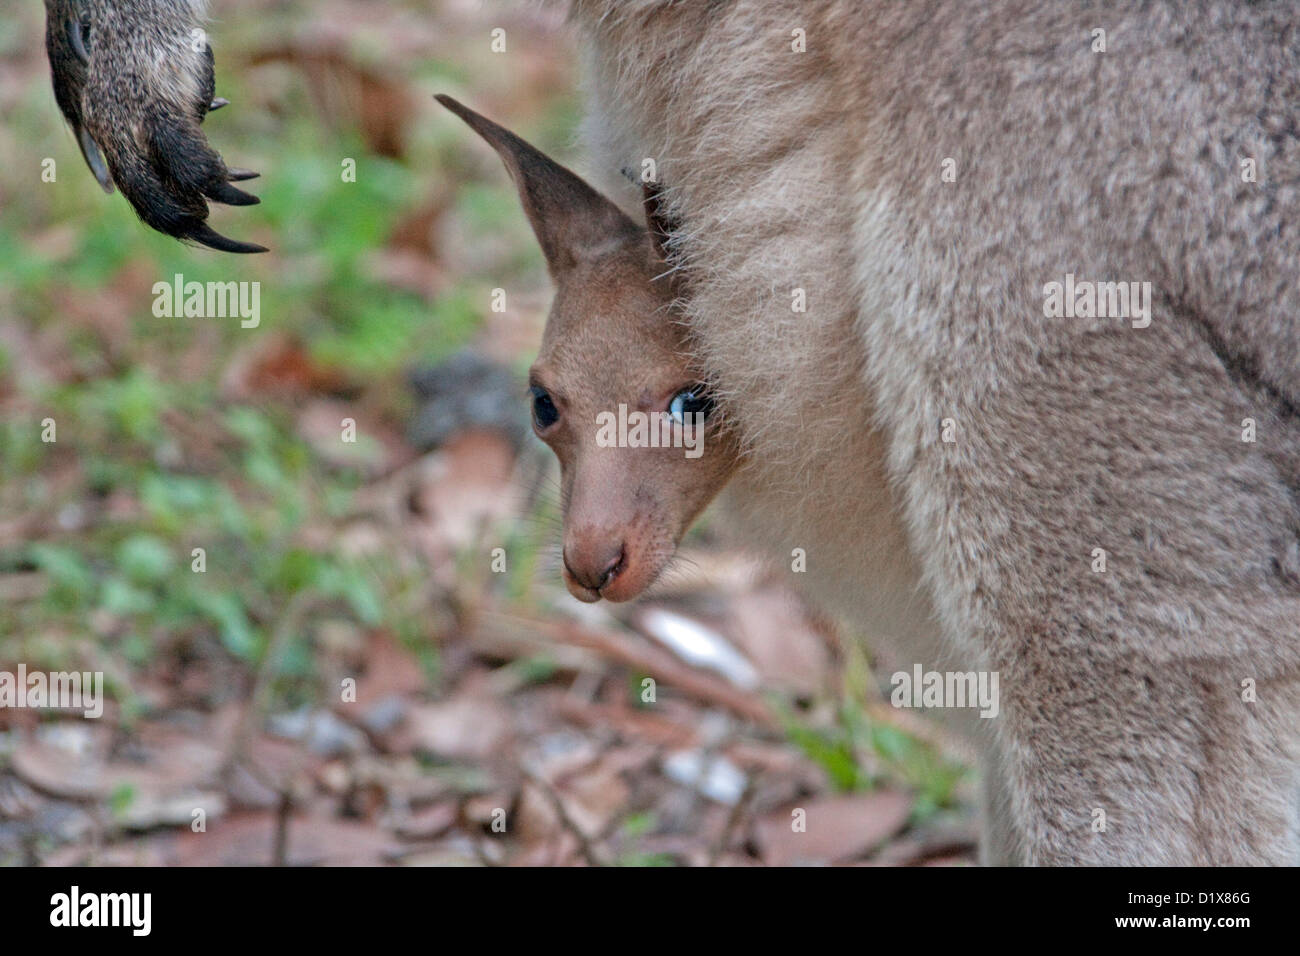 Close up of young joey - baby eastern grey kangaroo Macropus giganteus- with head and foot protruding from mother's - Stock Image